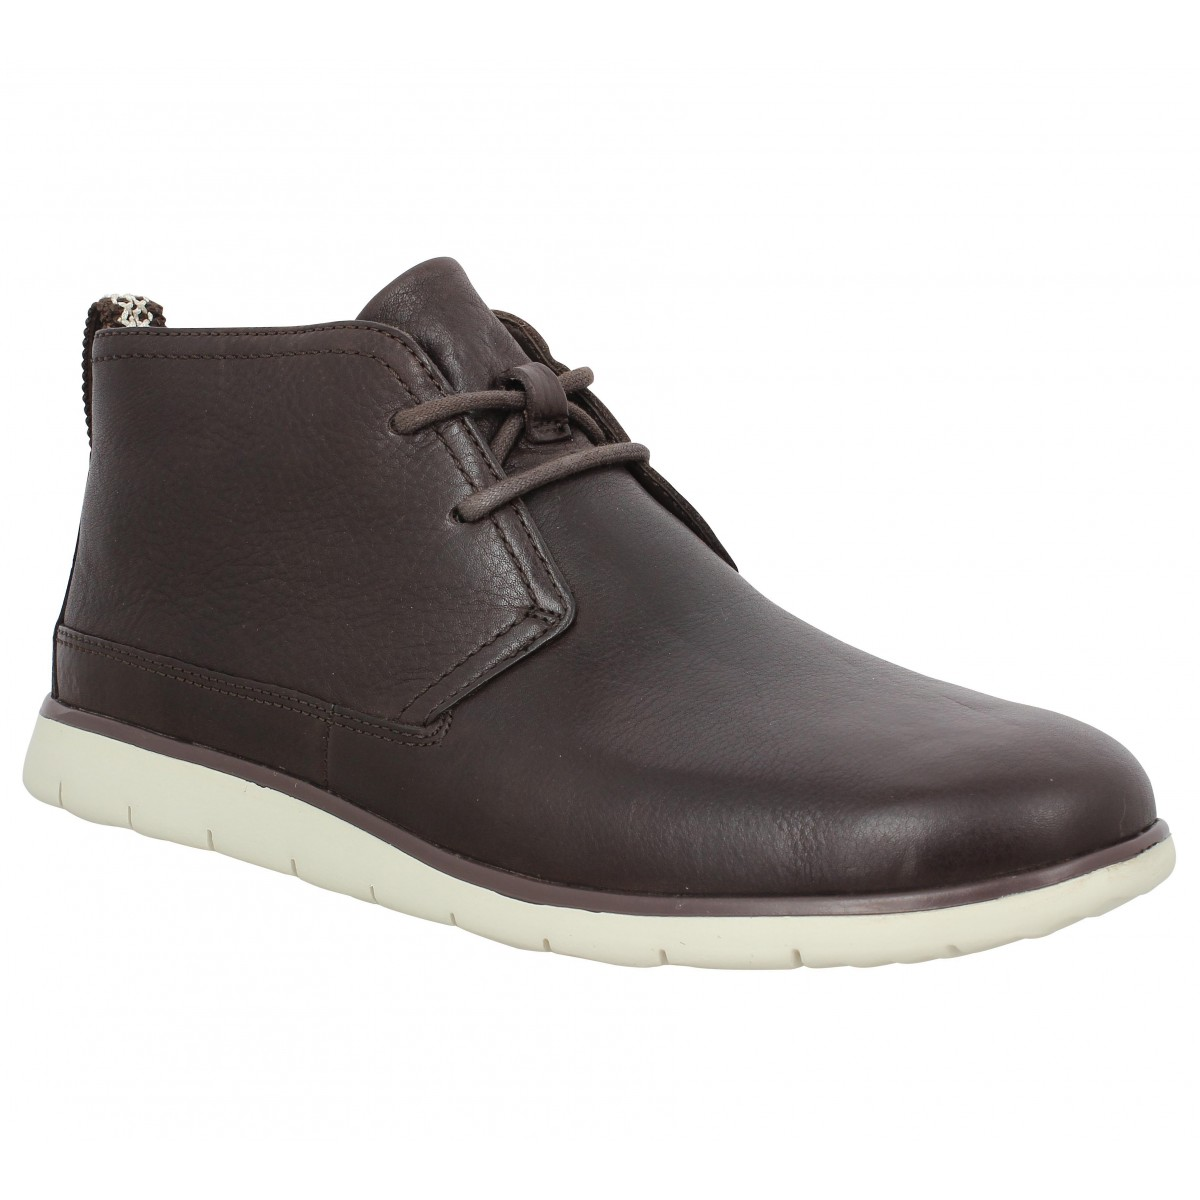 Bottines UGG AUSTRALIA Freamon cuir Marron